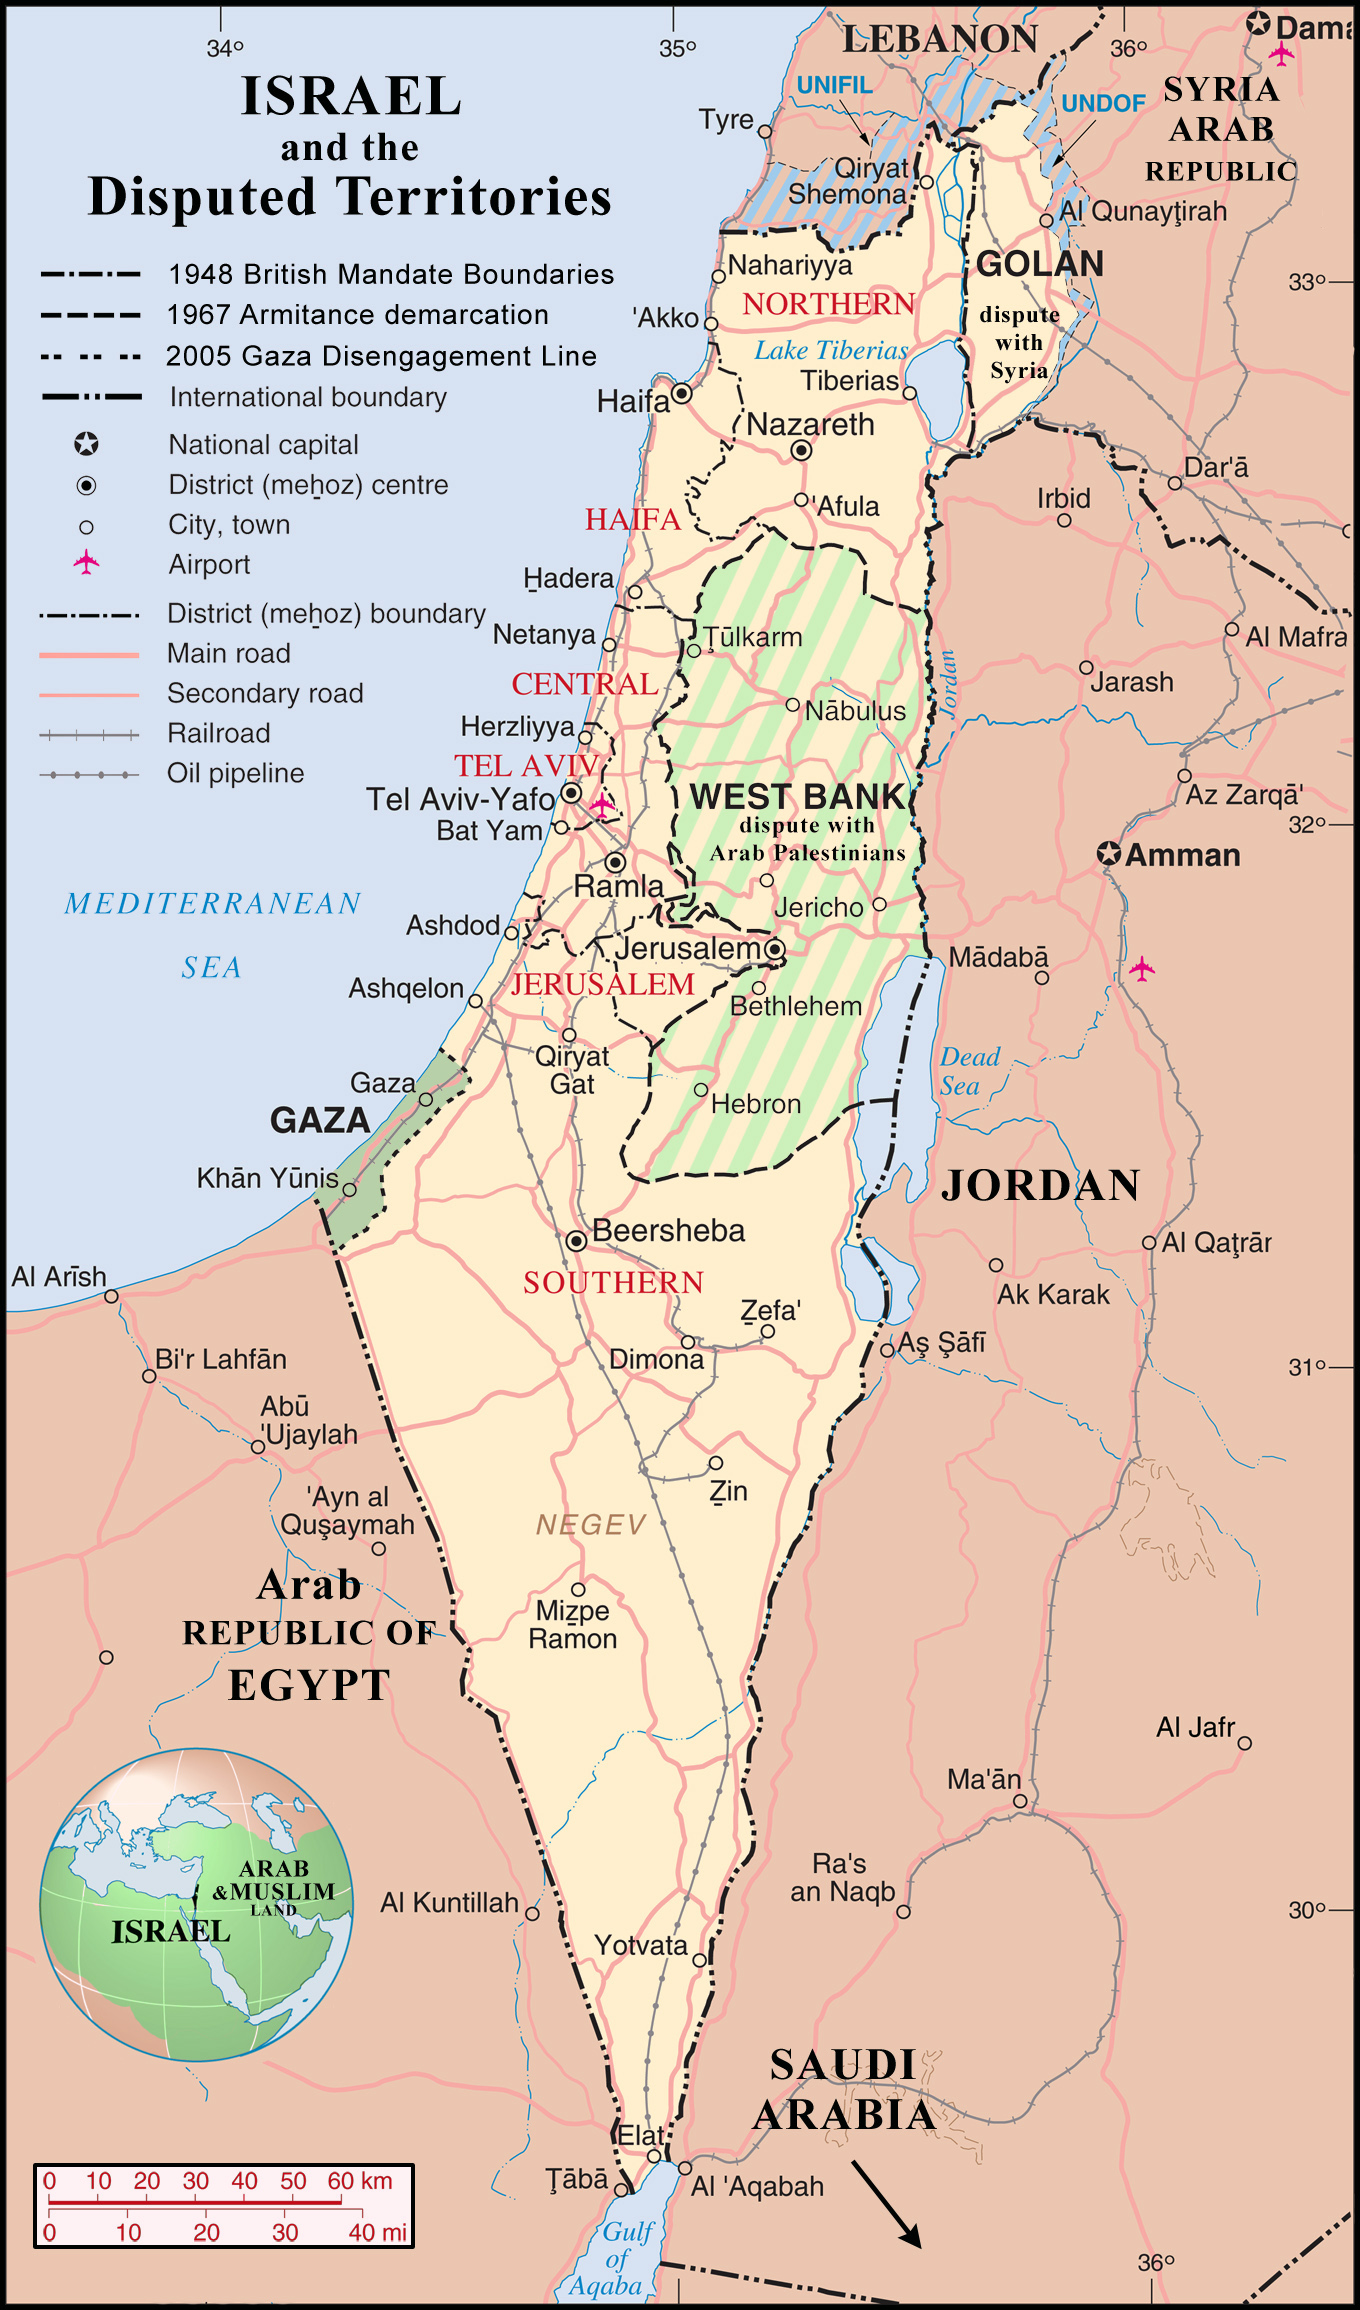 Maps of Israel | Detailed map of Israel in English | Tourist ... Printable Map Of Israel Today on biblical israel vs israel today, news in israel today, detailed map of israel today, physical israel map today, printable map of western europe, geography of israel today, modern maps of israel today, israel map as of today, printable map of southeast asia, large map of israel today, printable map of romania, israel boundaries today, israel vs judah today, religions in israel today, interactive map of israel today, printable new testament israel map, israel 1948 and today, map of ancient israel today, printable map of san bernardino county, map of middle east today,